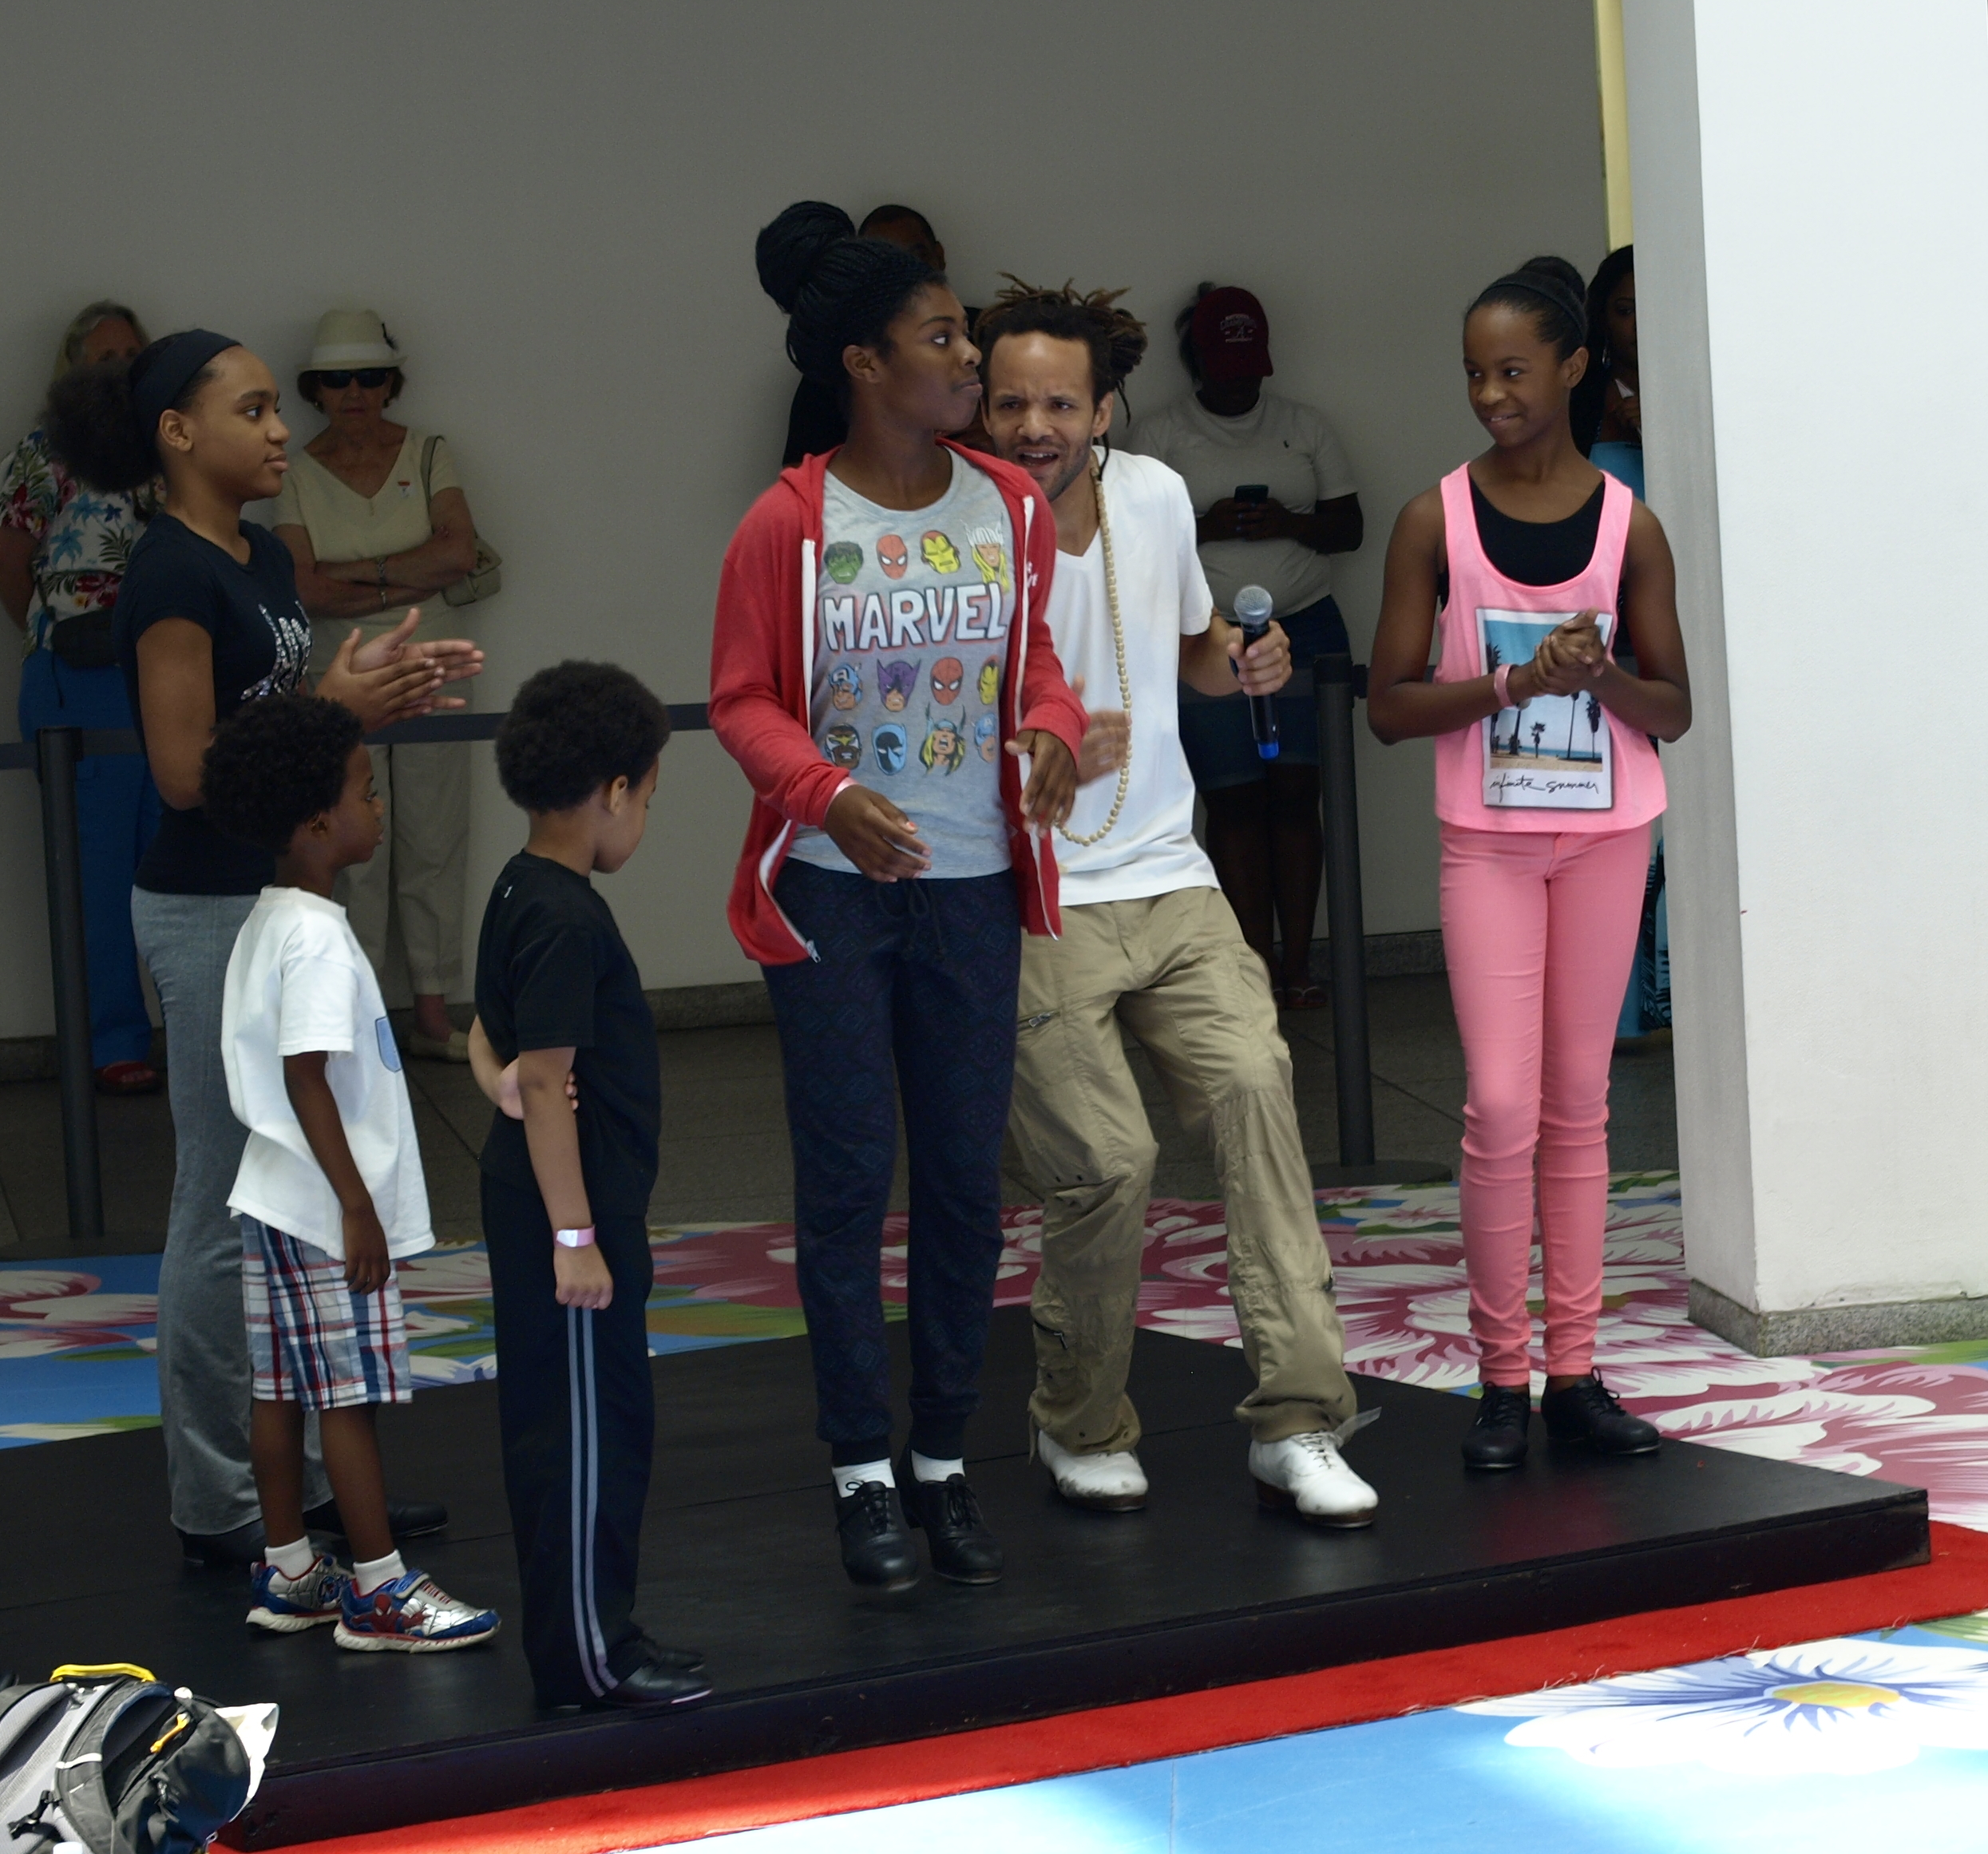 Savion Glover and a young lady rapped with their feet.